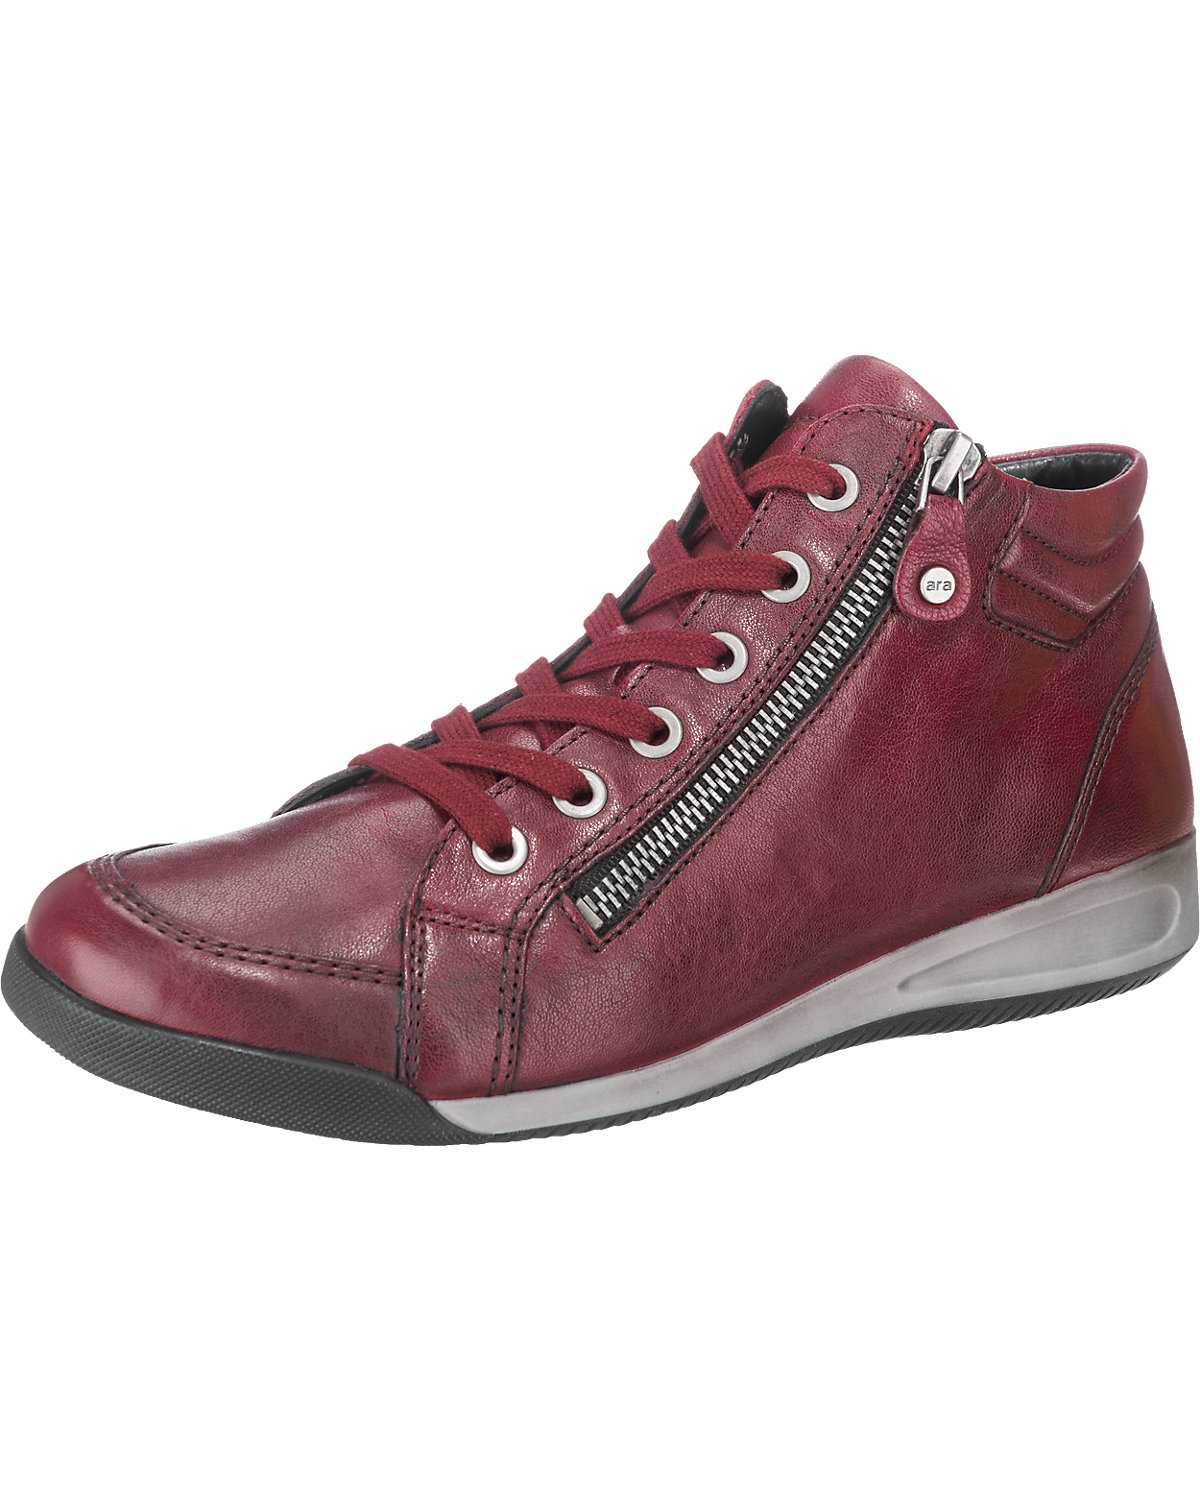 ara, ara, ara, ROM Sneakers High, rot f4e0cd